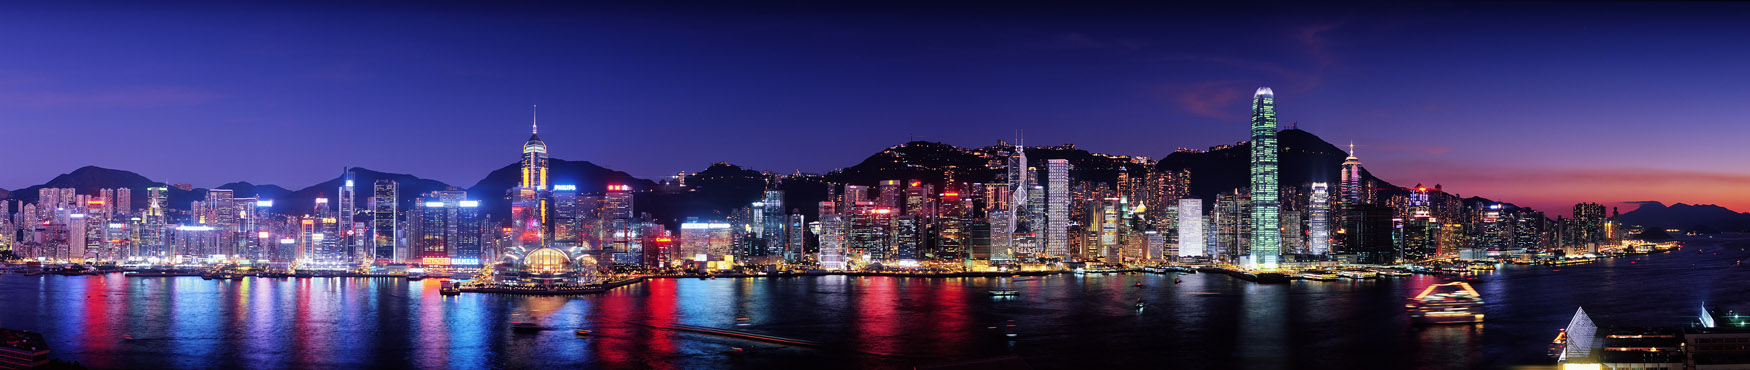 victoria harbor pictures history facts hong kong. Black Bedroom Furniture Sets. Home Design Ideas